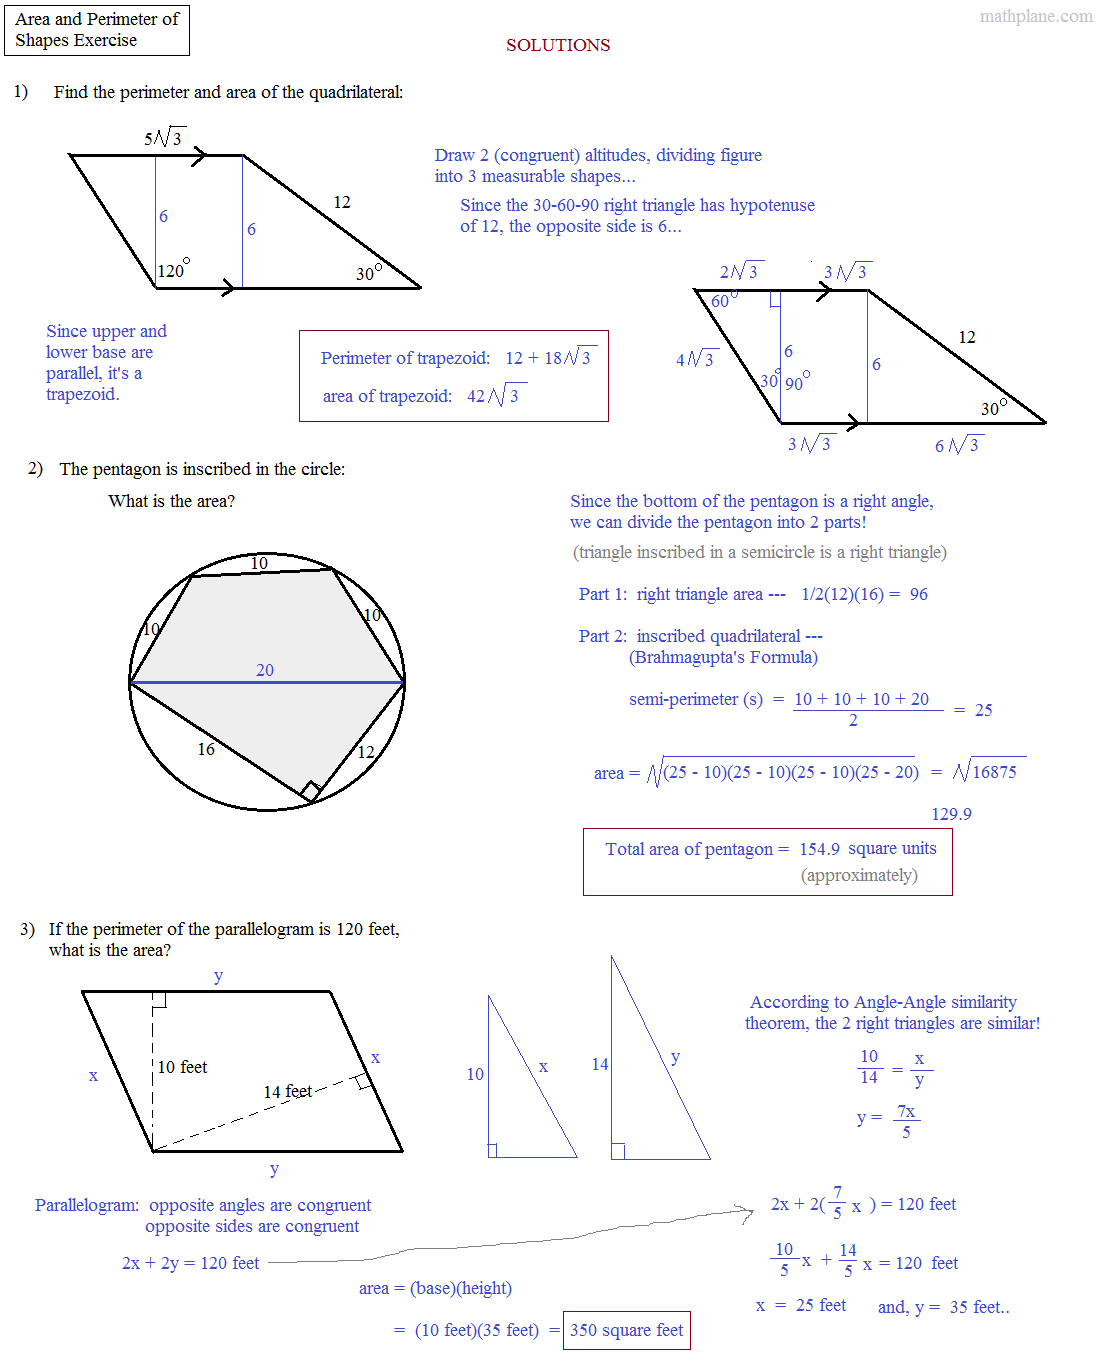 Math Plane - Area and Perimeter of Complex Shapes